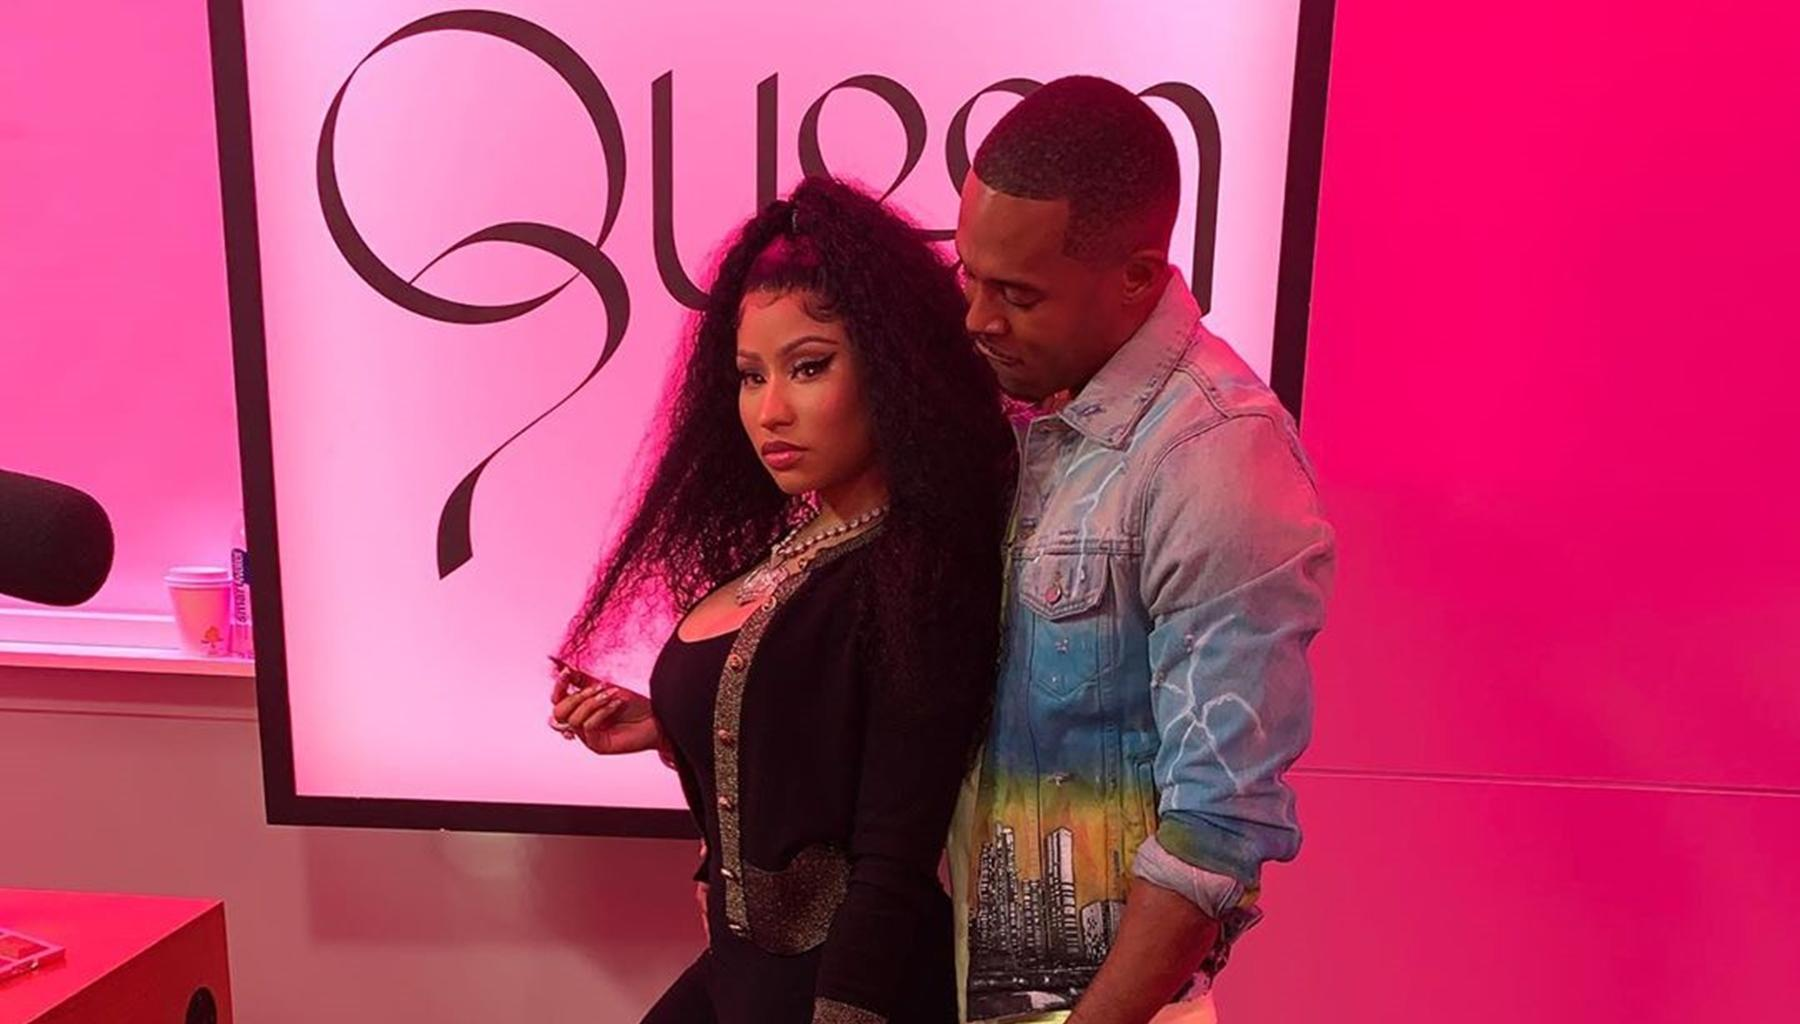 Nicki Minaj Goes After Rick Ross For Comments He Made While She Was Dating Meek Mill; 50 Cent Gets In The Feud With This Video